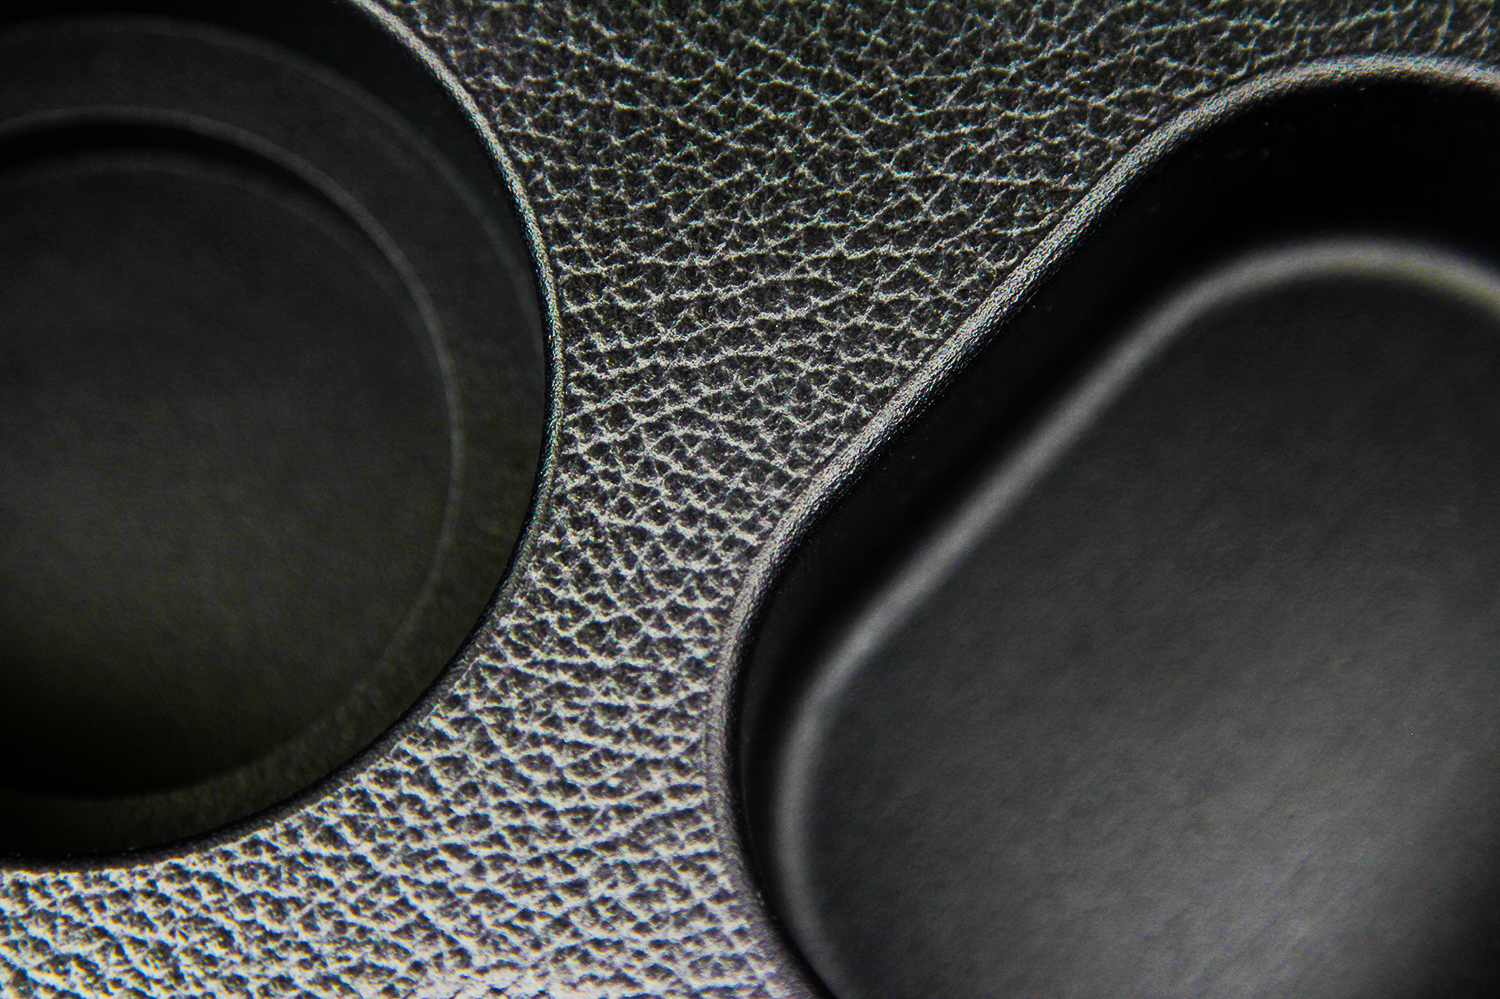 The Automotive BlackX applied to a 3D printed interior car part. Image via DyeMansion.